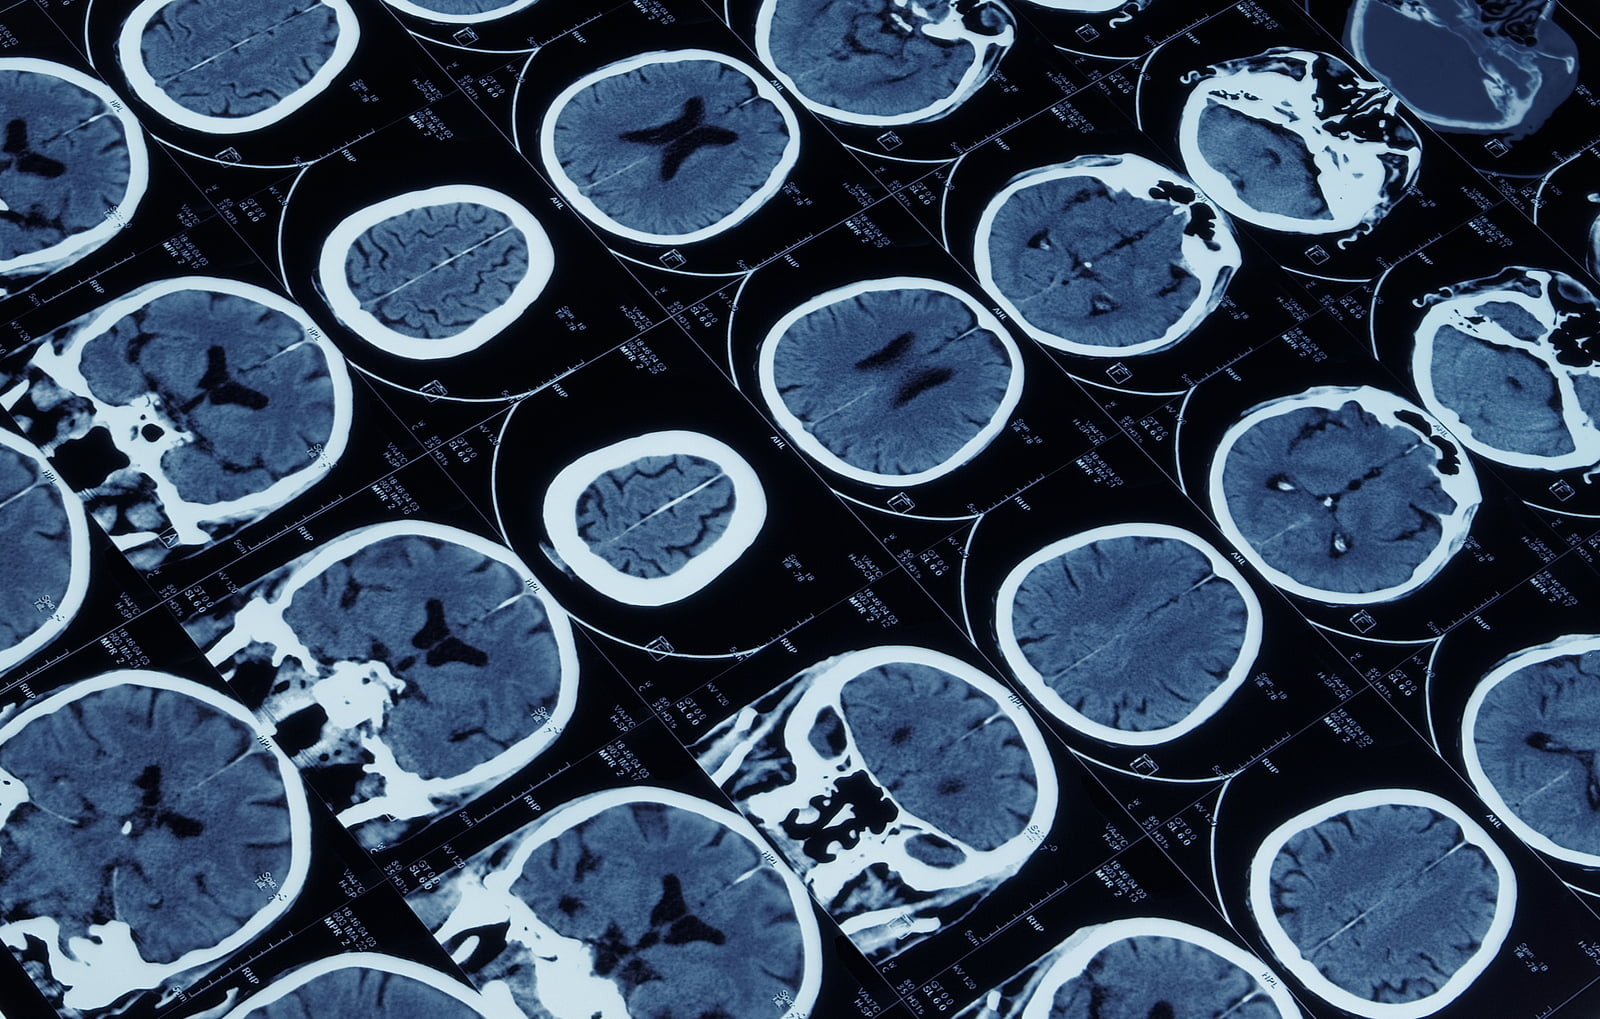 Study: Common Drug Could Prevent Injury-Related Epilepsy